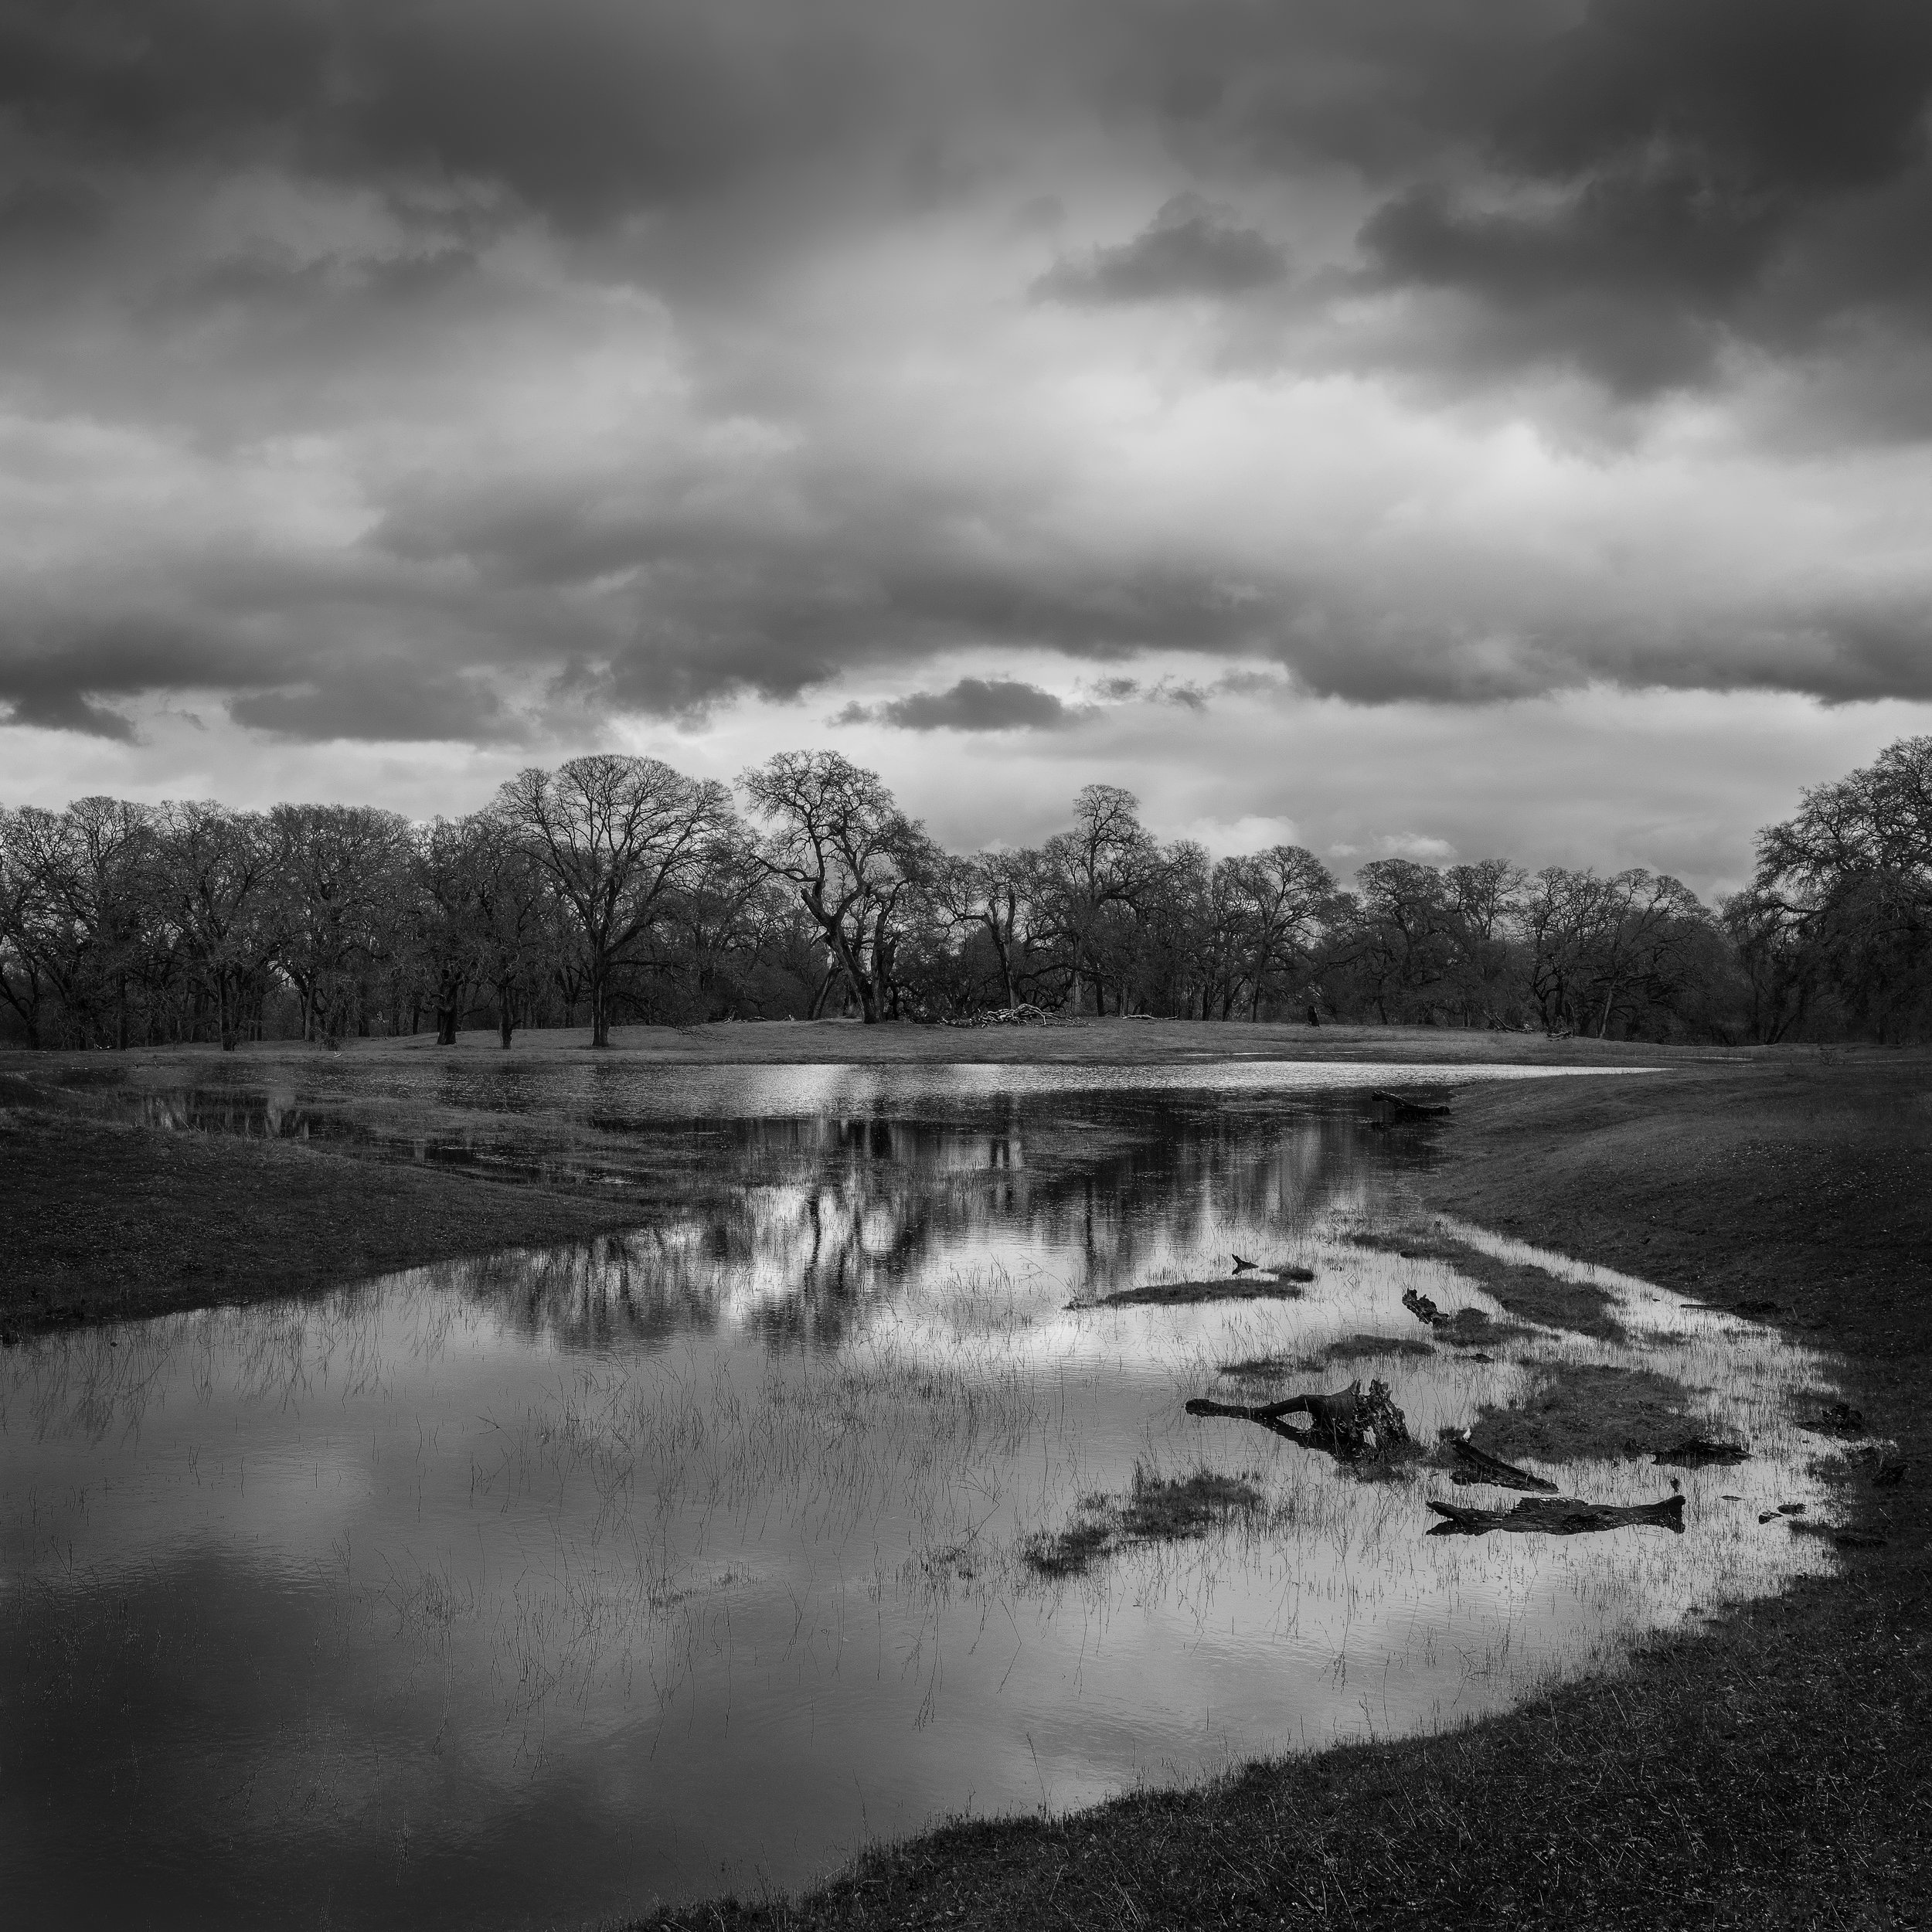 The Wetland at Branch Creek Study 2